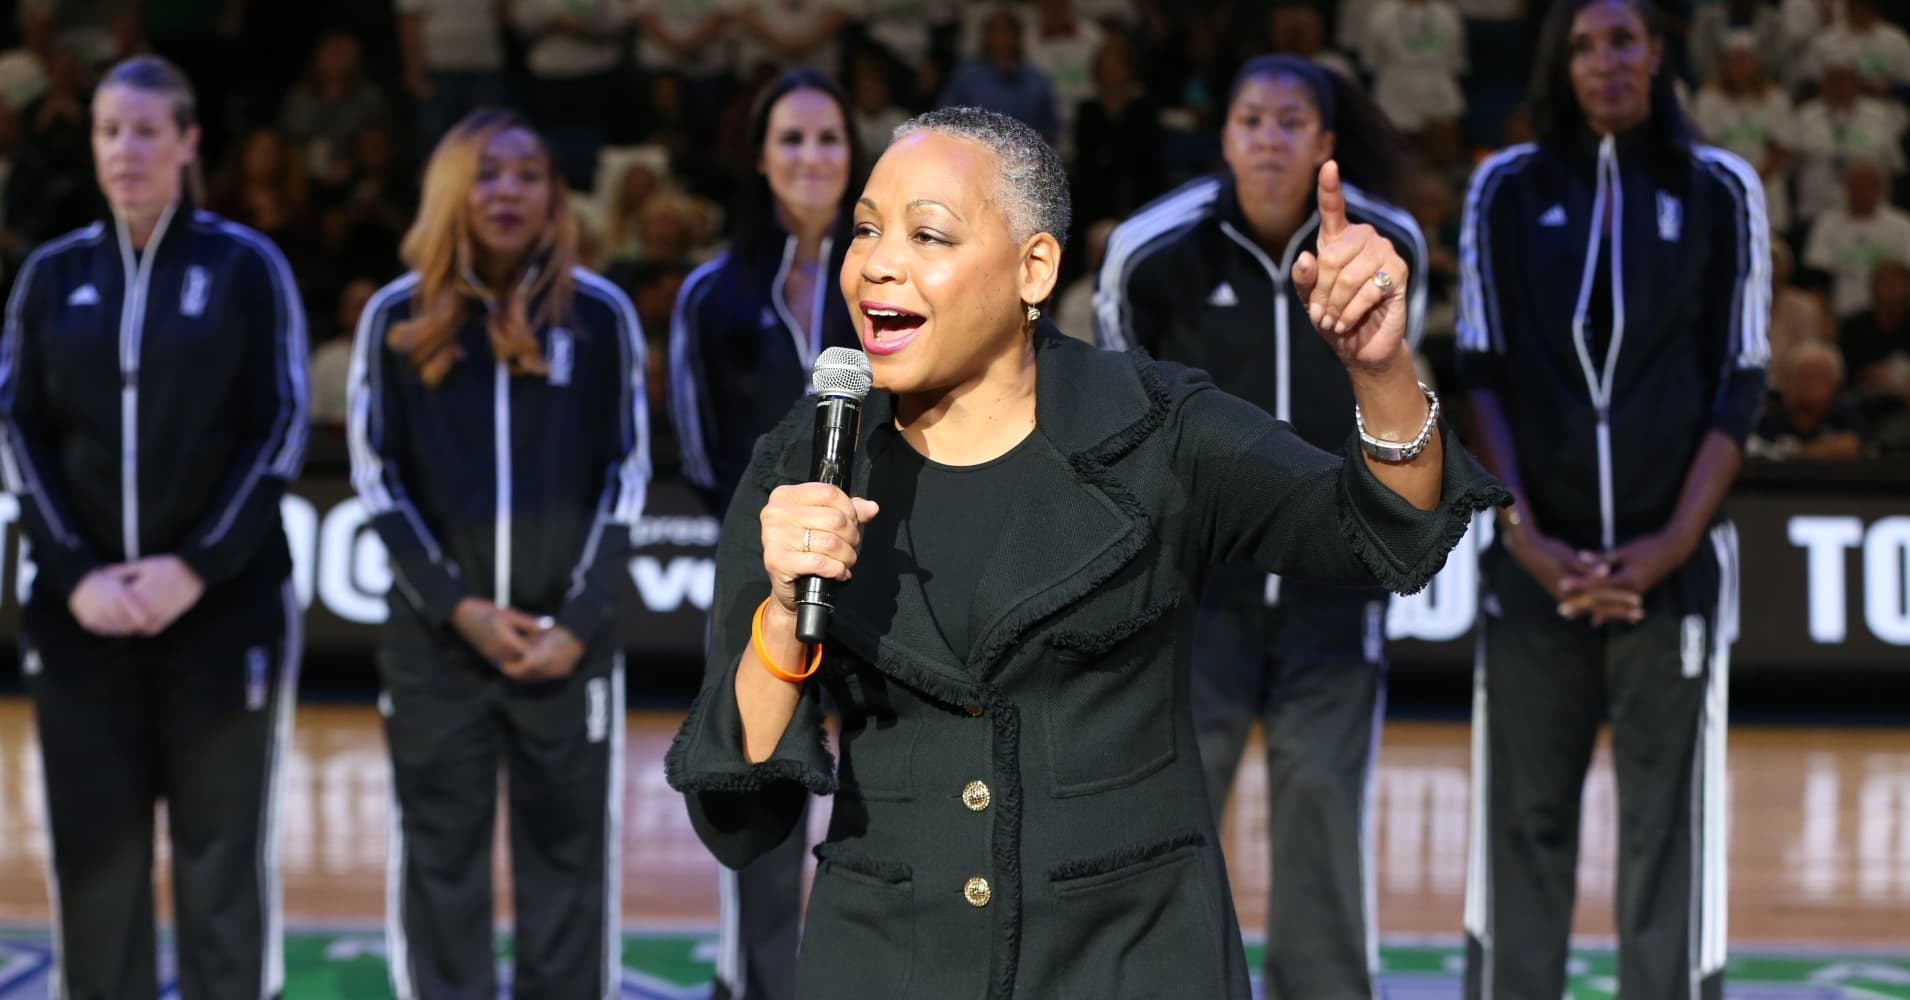 WNBA's president: Overcoming racial discrimination drove me to Duke